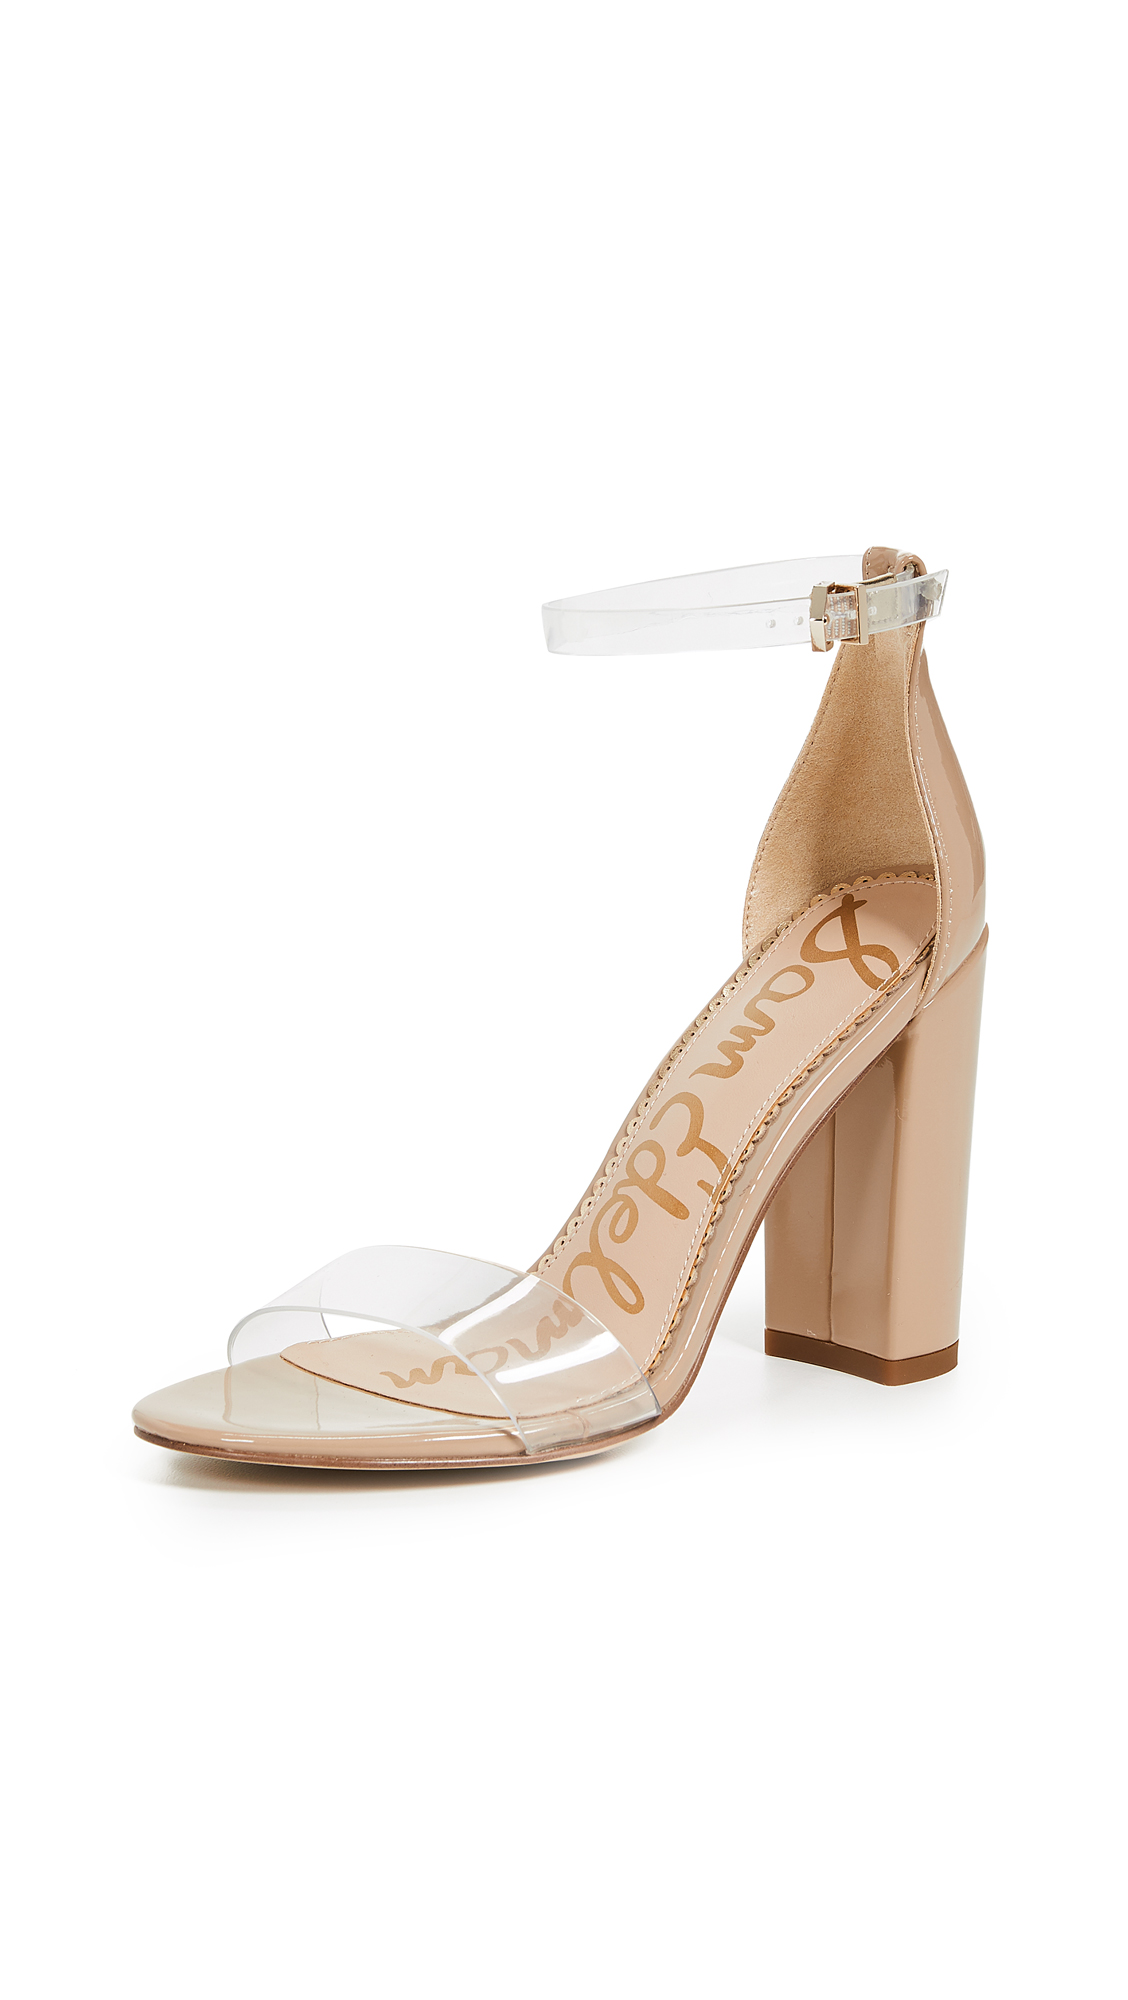 Sam Edelman Yaro Sandals - Clear/Tan